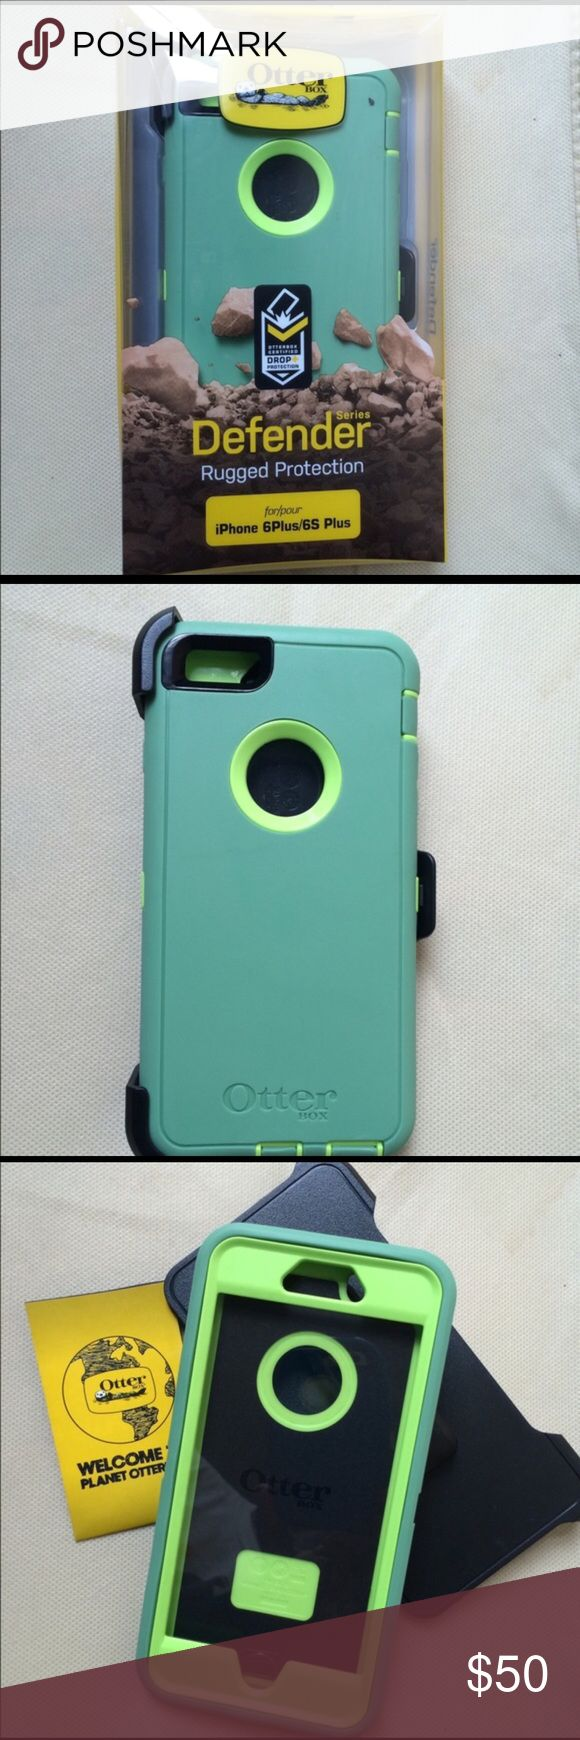 iPhone 6/6s plus otter box Like new iPhone 6/6s plus otter box defender case with holster clip and built in screen protecter. Only used a week and still have package. OtterBox Accessories Phone Cases